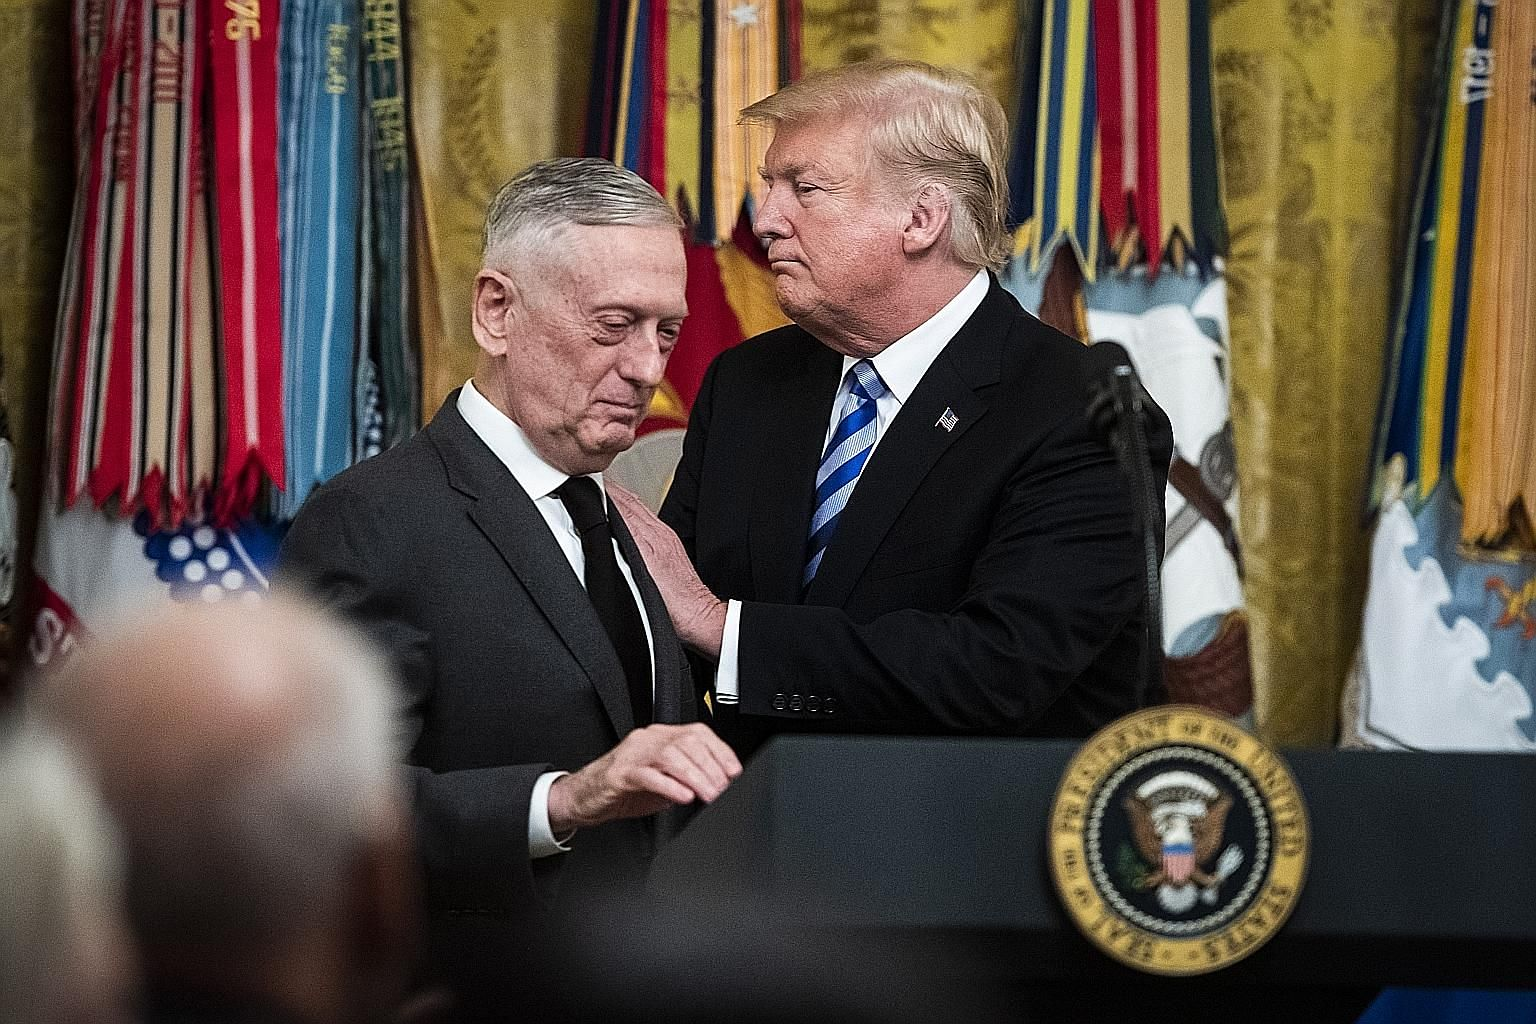 The relationship between US President Donald Trump and Secretary of Defence James Mattis showed signs of strain even before the Pentagon chief resigned this week.